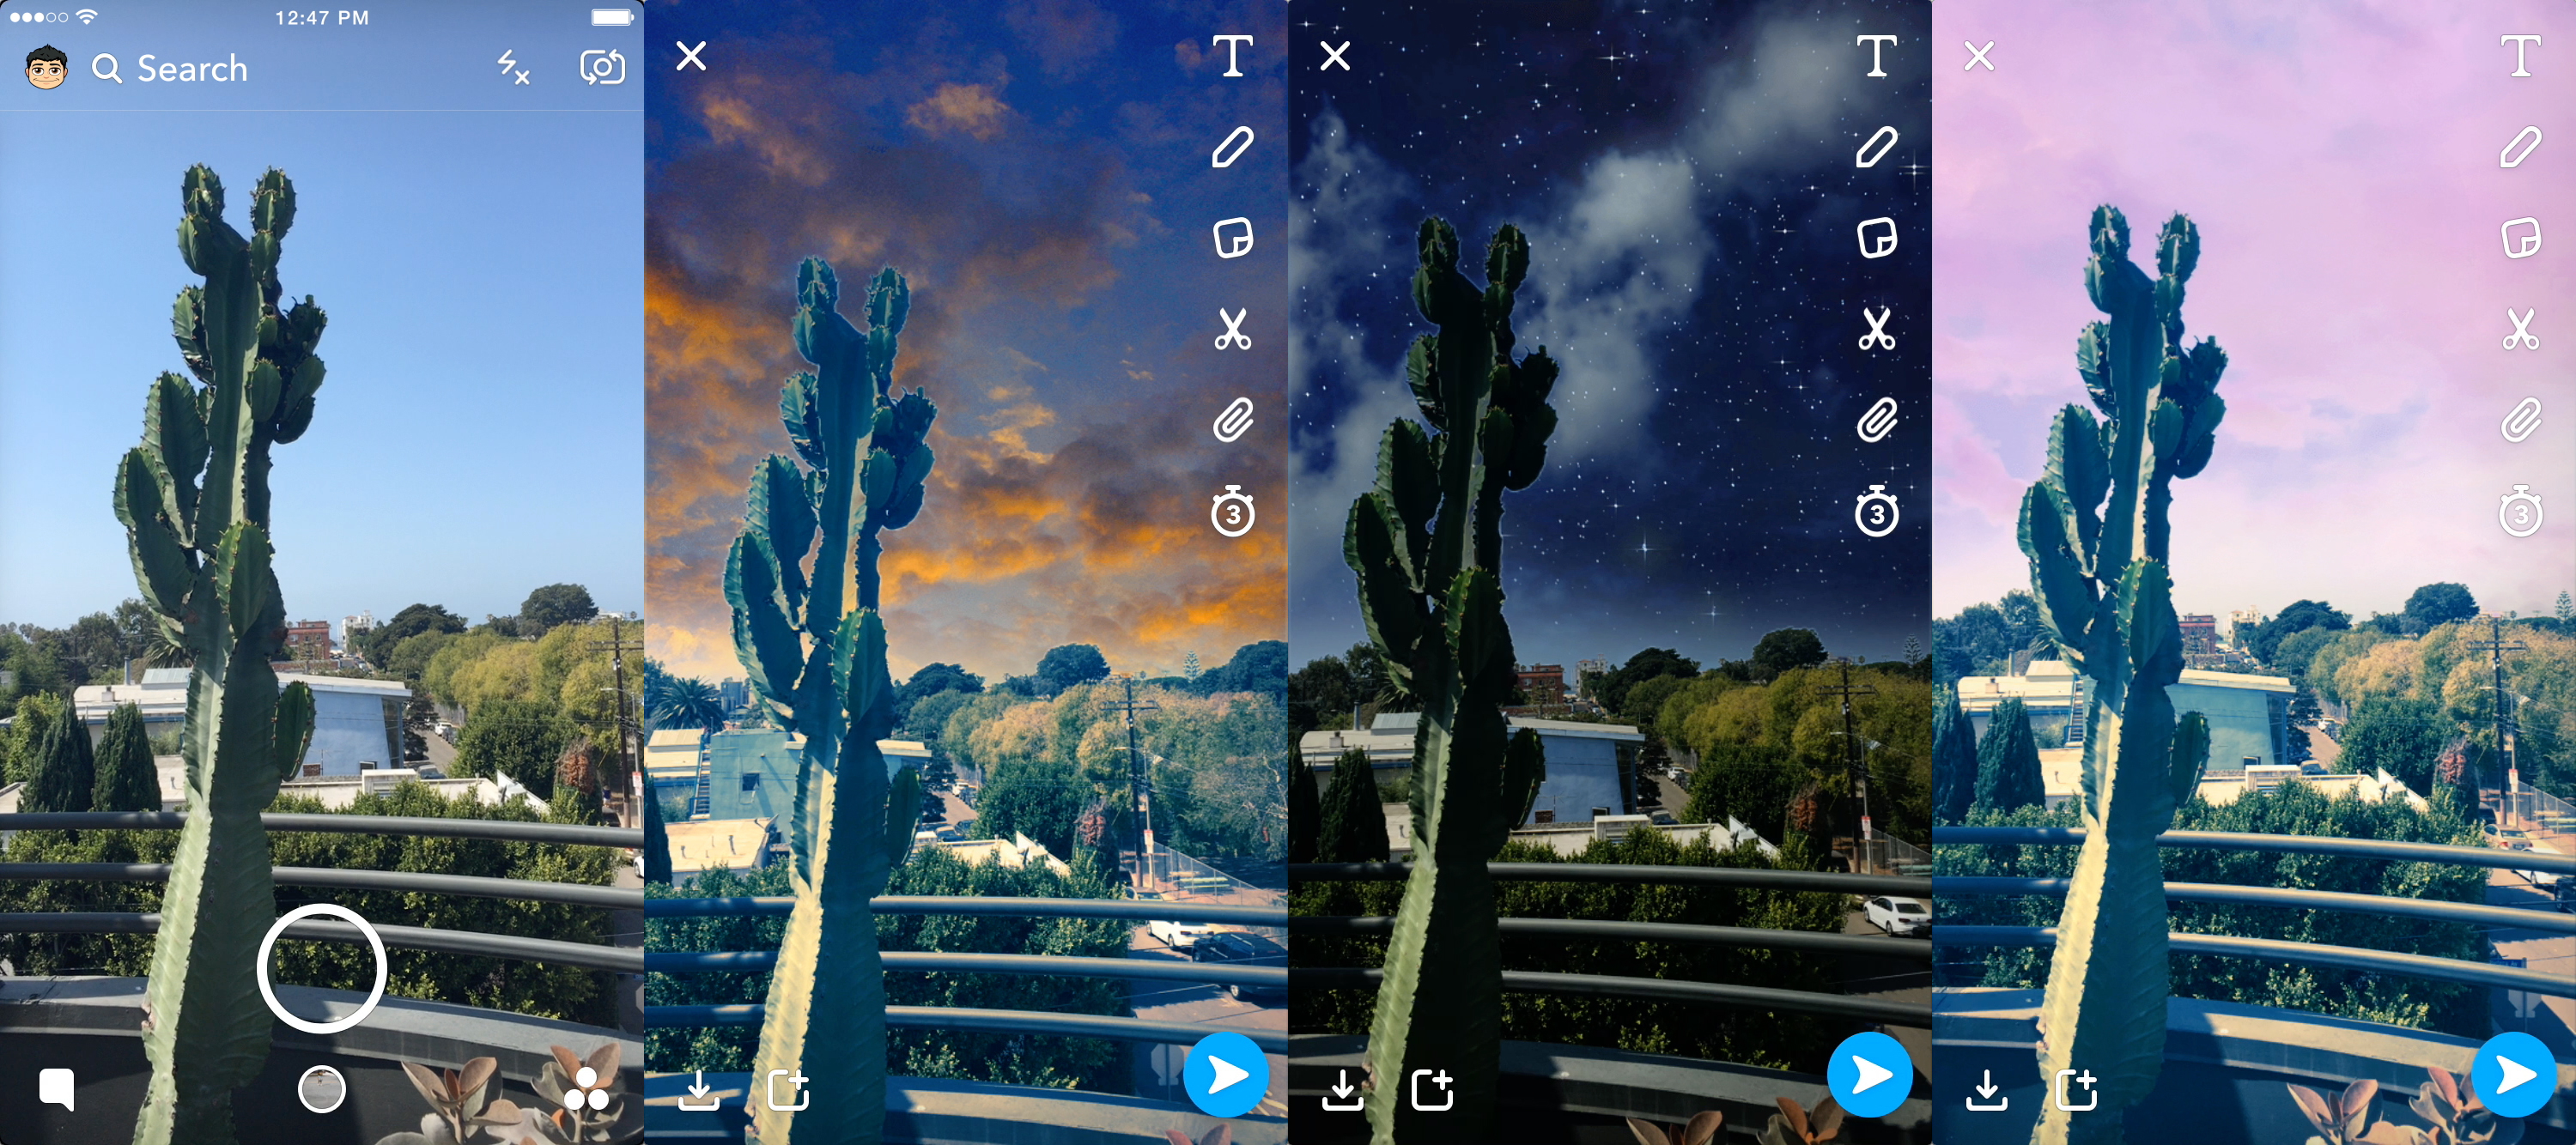 Snapchat's new Filters can transform the sky above your head